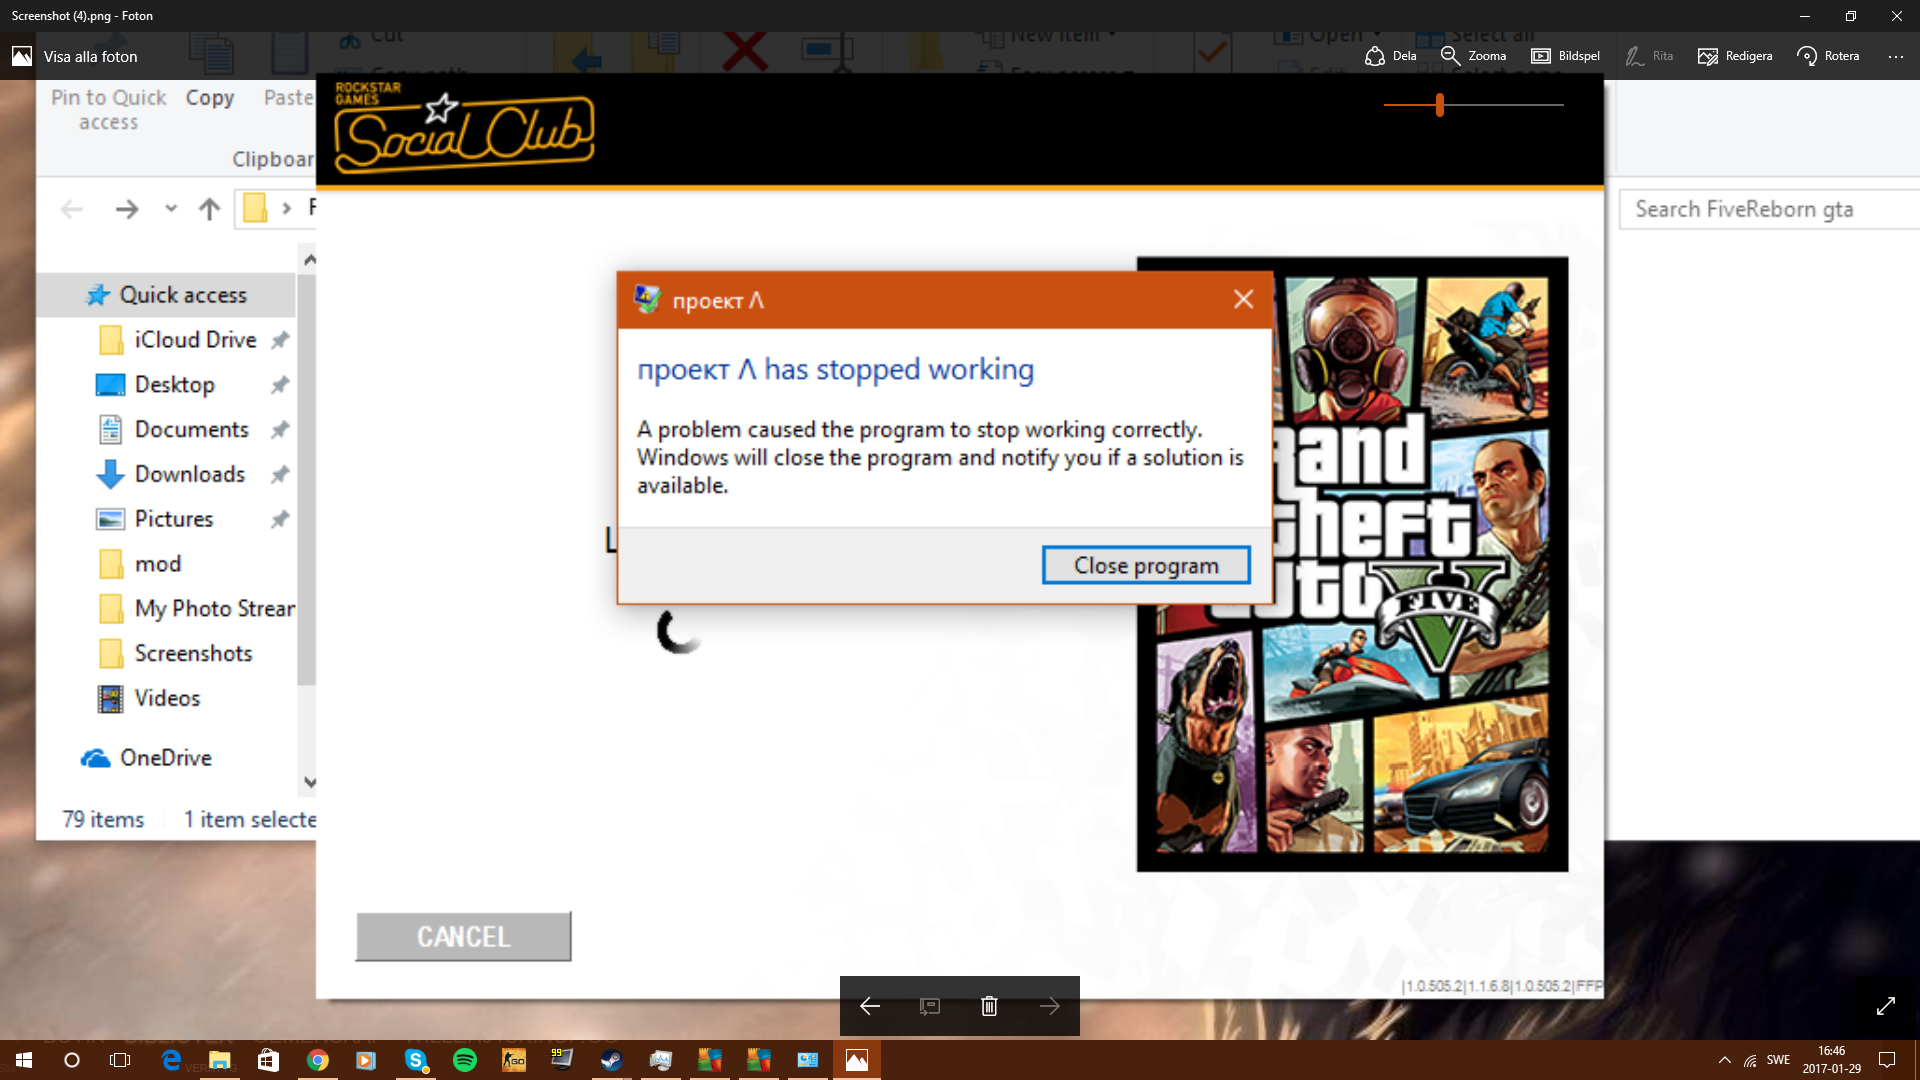 My Game Crashes After Starting the gta launcher - Technical Support